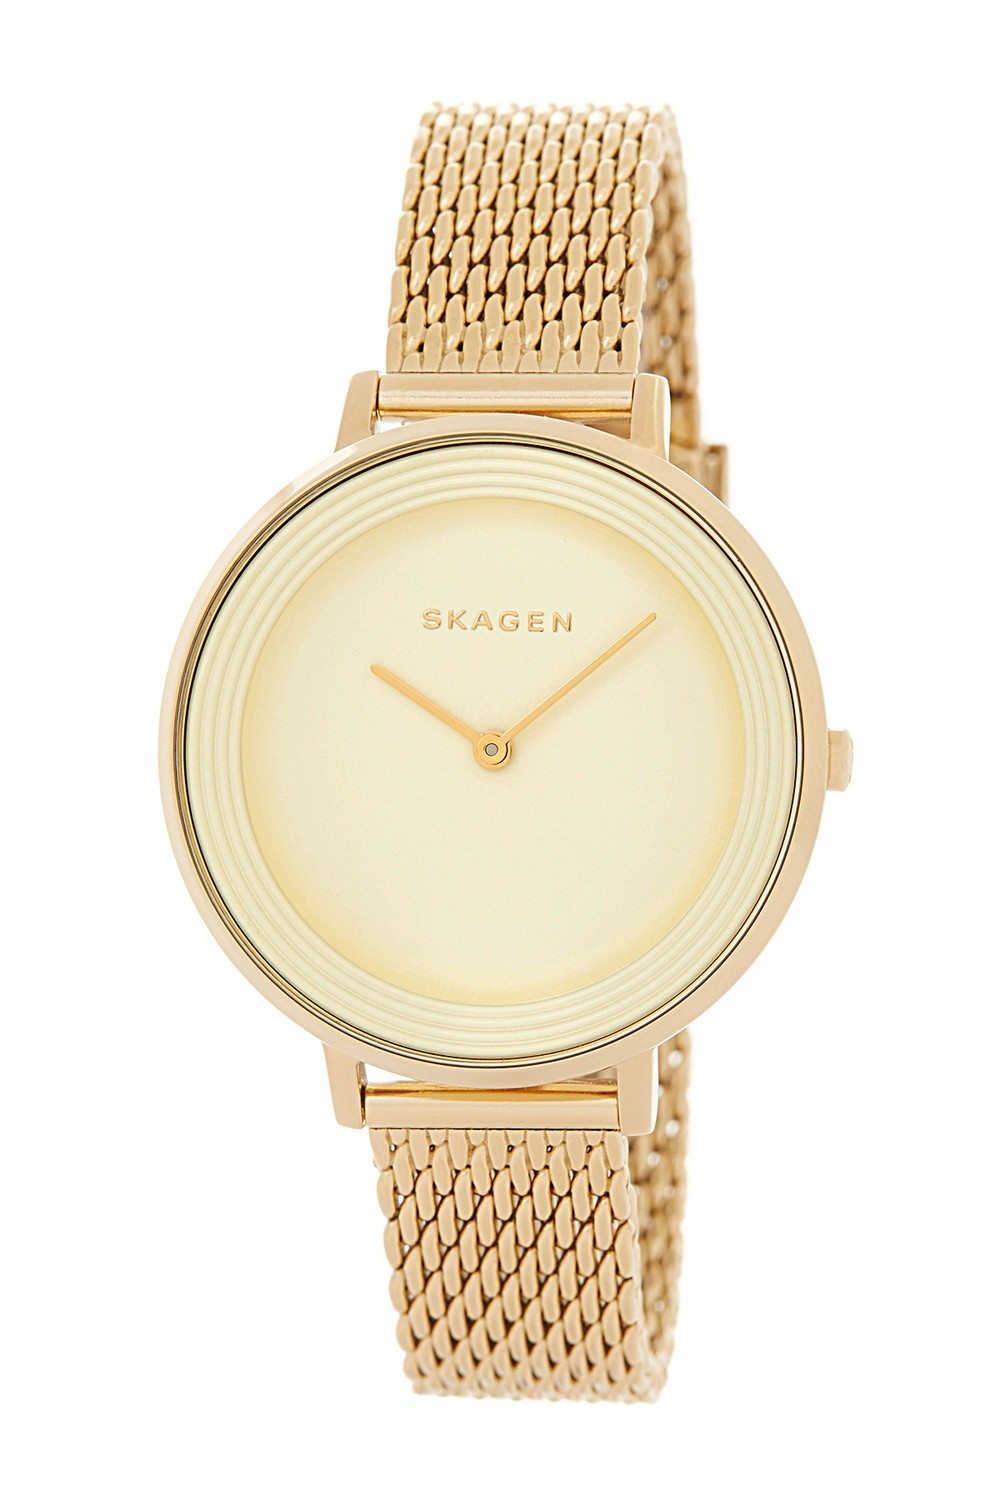 Skagen Watch,  Nordstrom Rack , $87